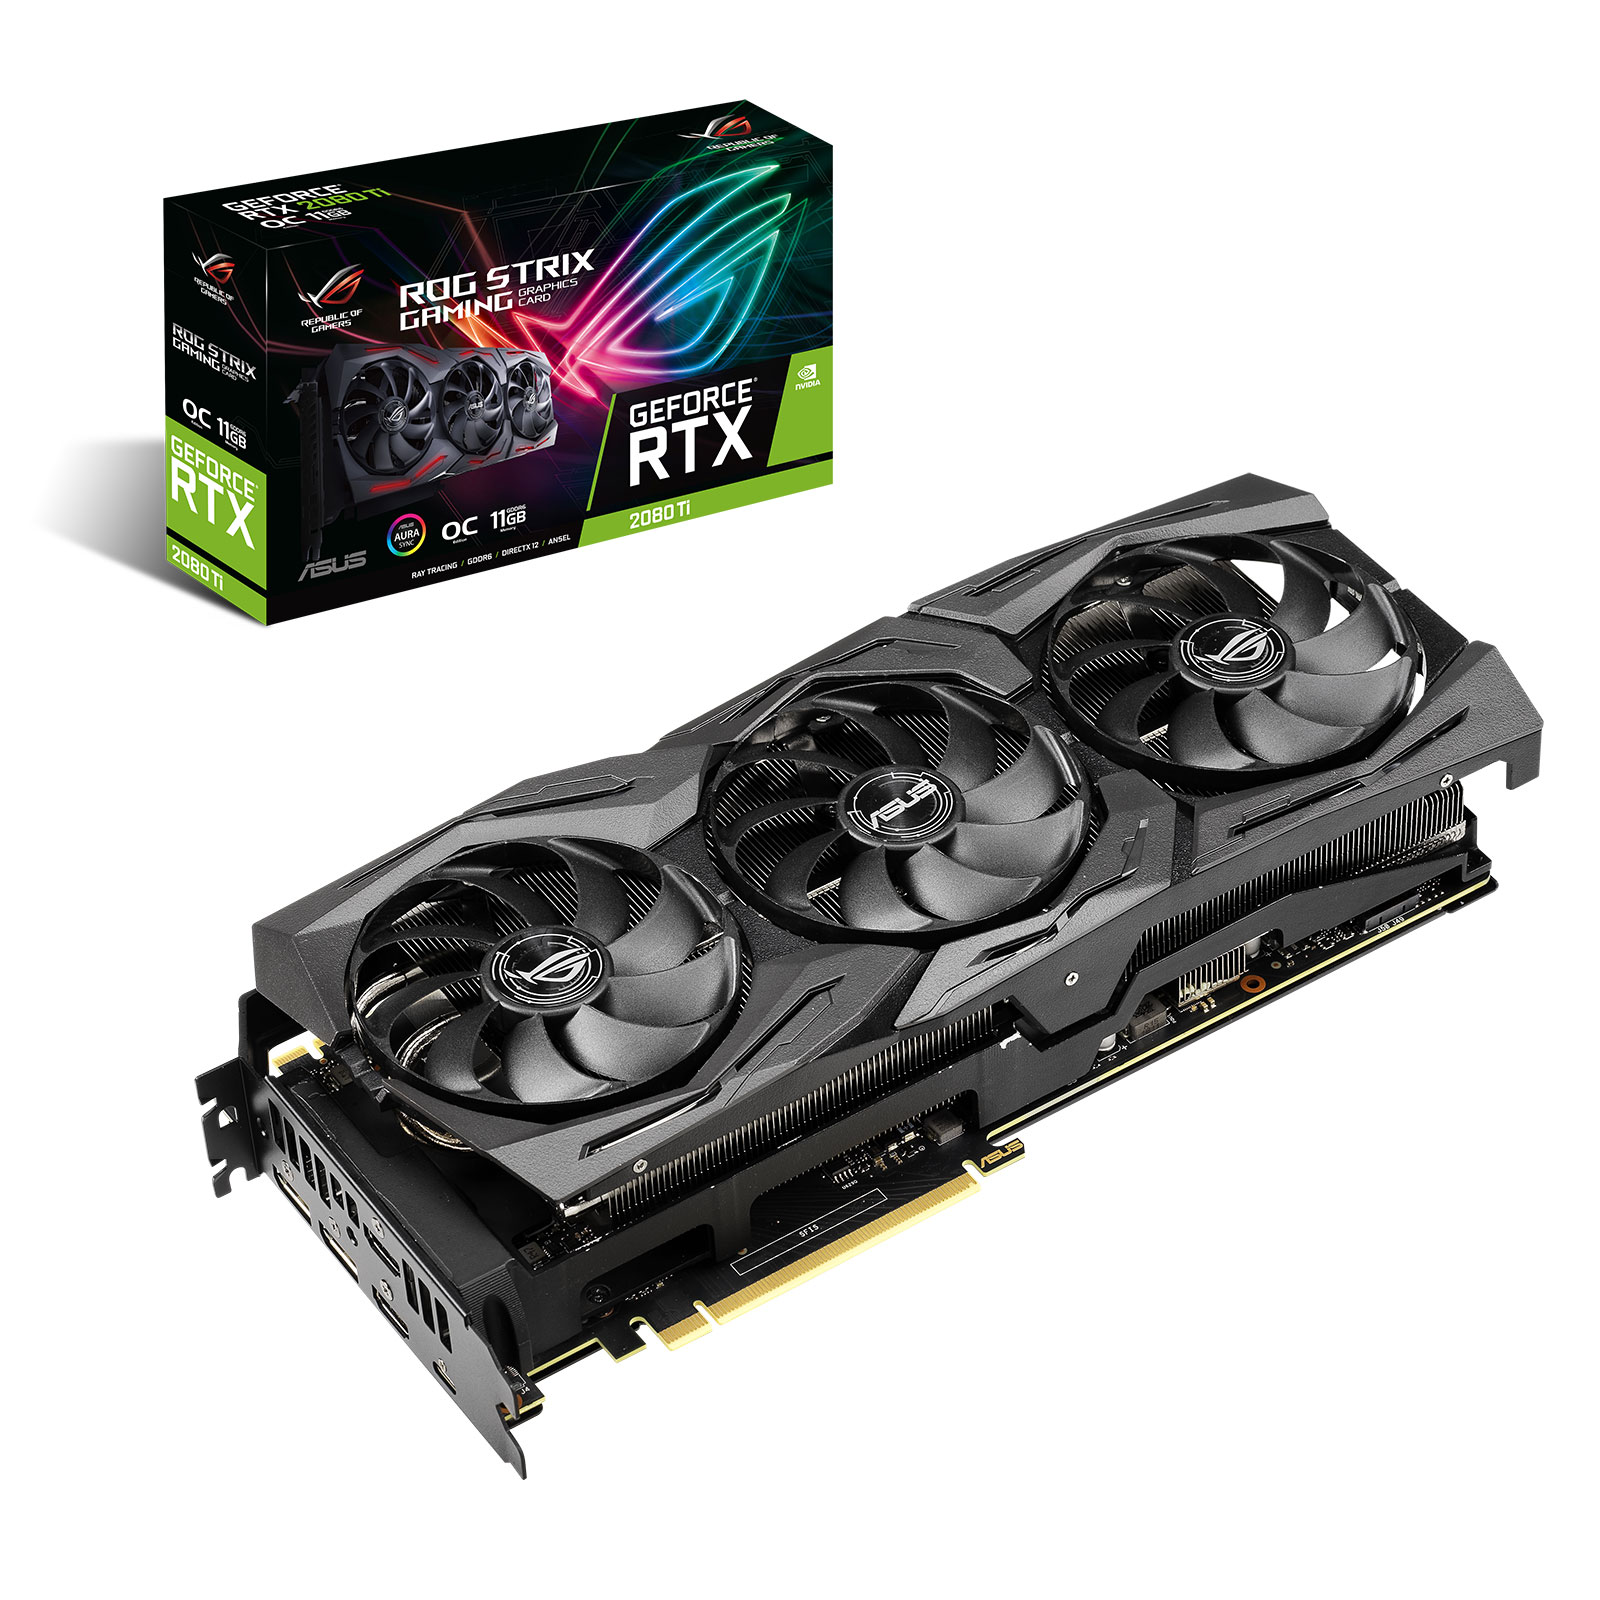 Graphic Card Asus ROG-STRIX-RTX 2080TI -11G GAMING 3 years warranty